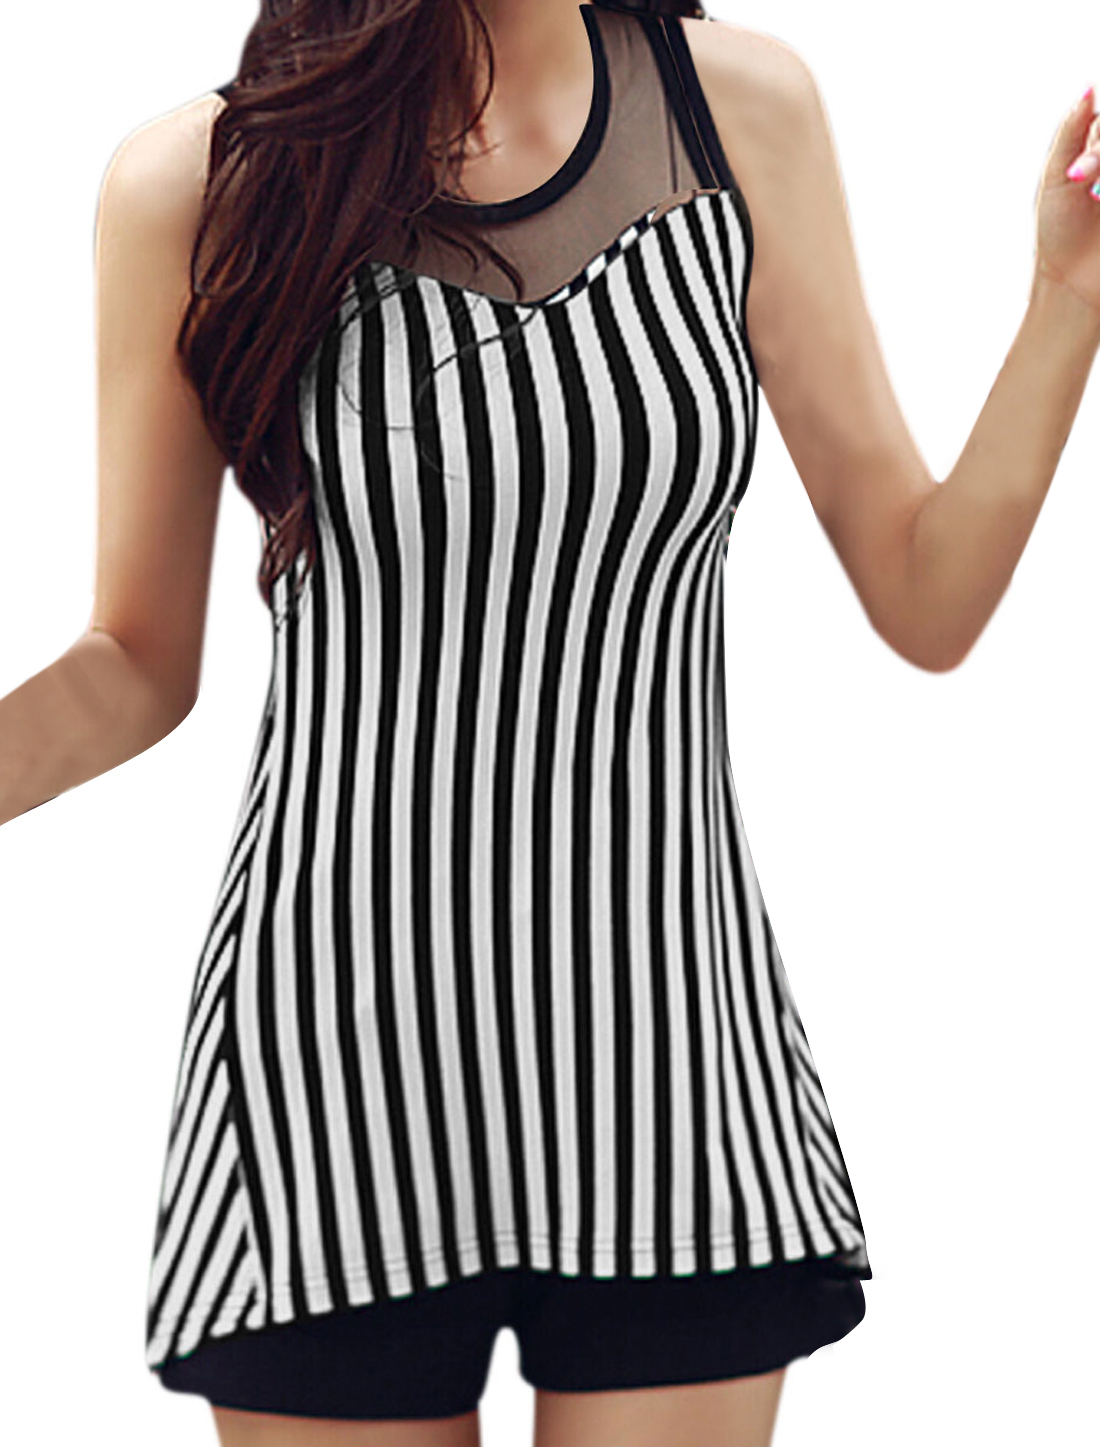 Lady Sleeveless Mesh Panel York Stripes High Low Hem Tunic Top Black White S